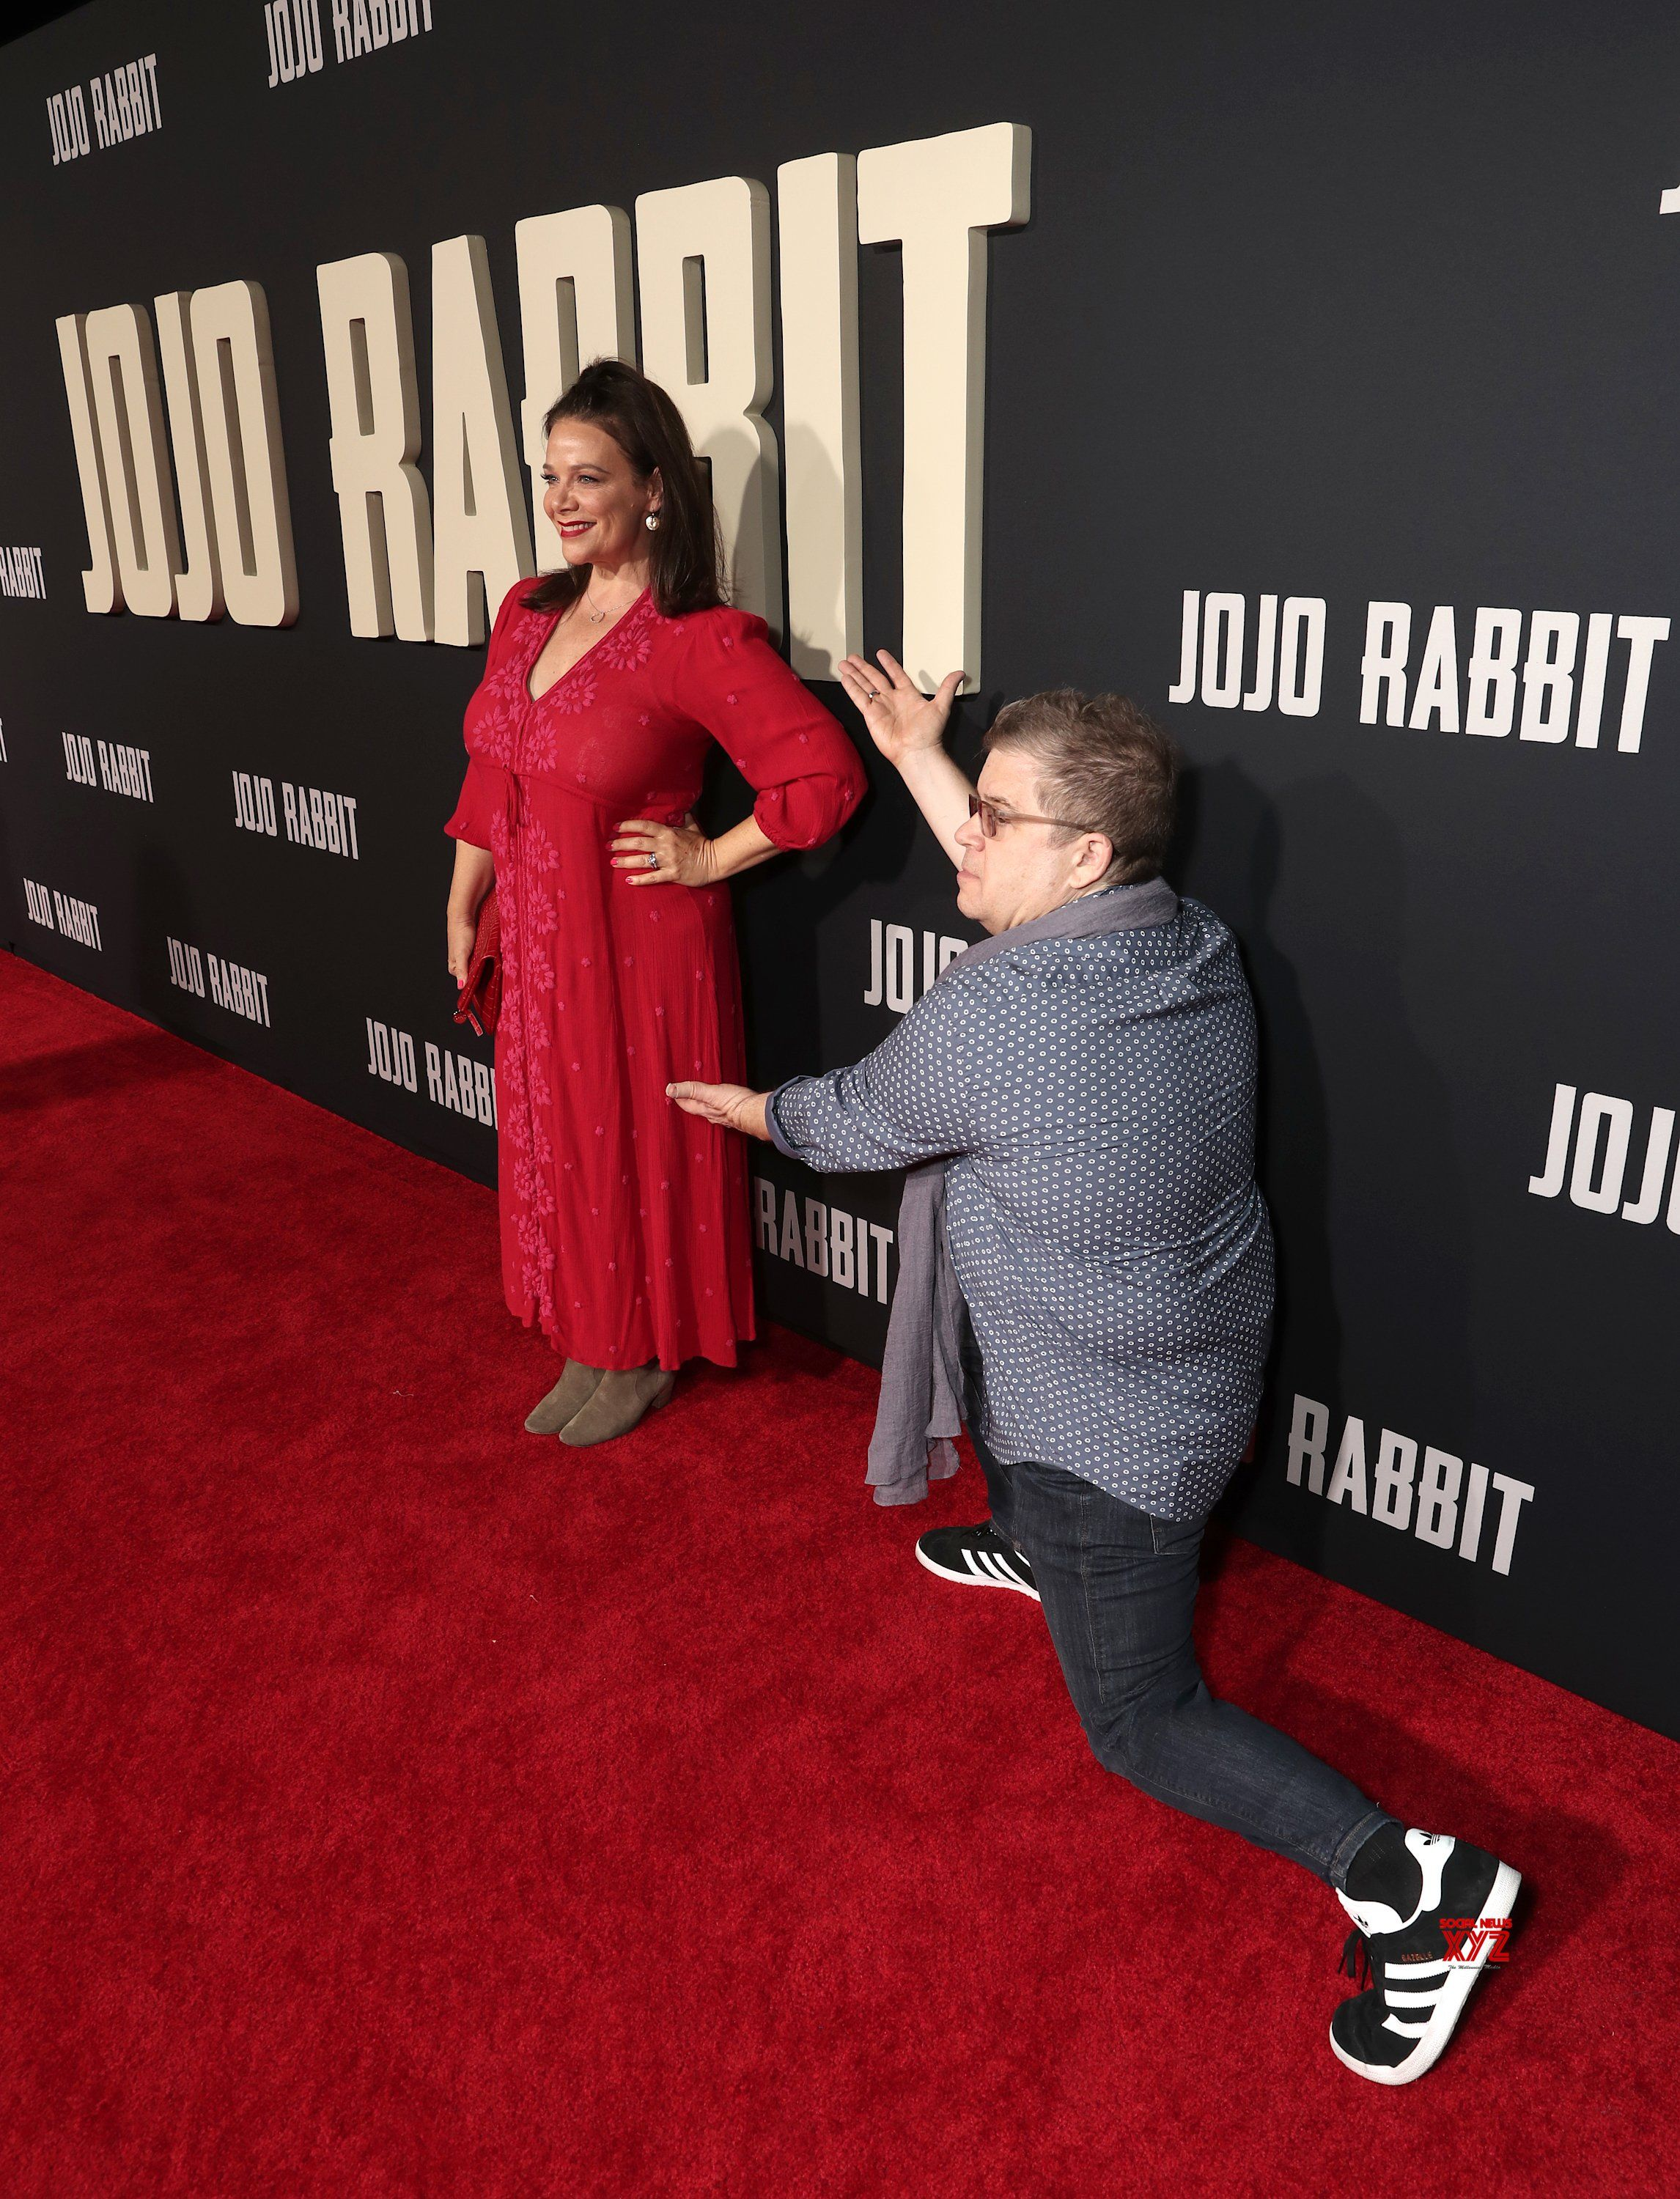 Jojo Rabbit Movie LA Premiere HD Gallery Set 2